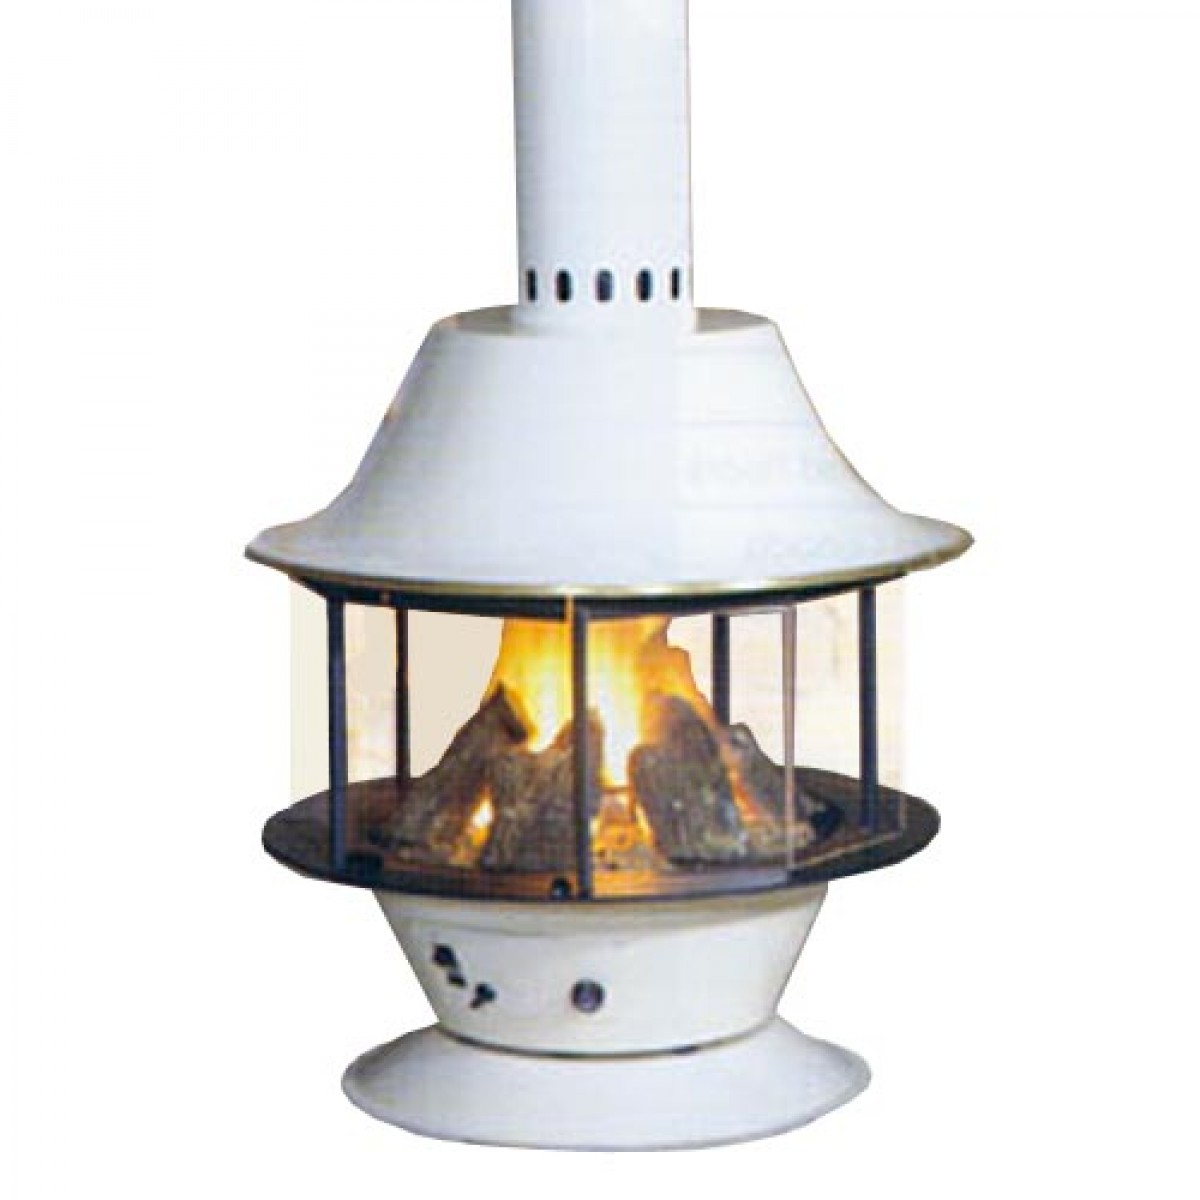 Malm Spin A Fire Wood Burning Or Gas Matte Black Or